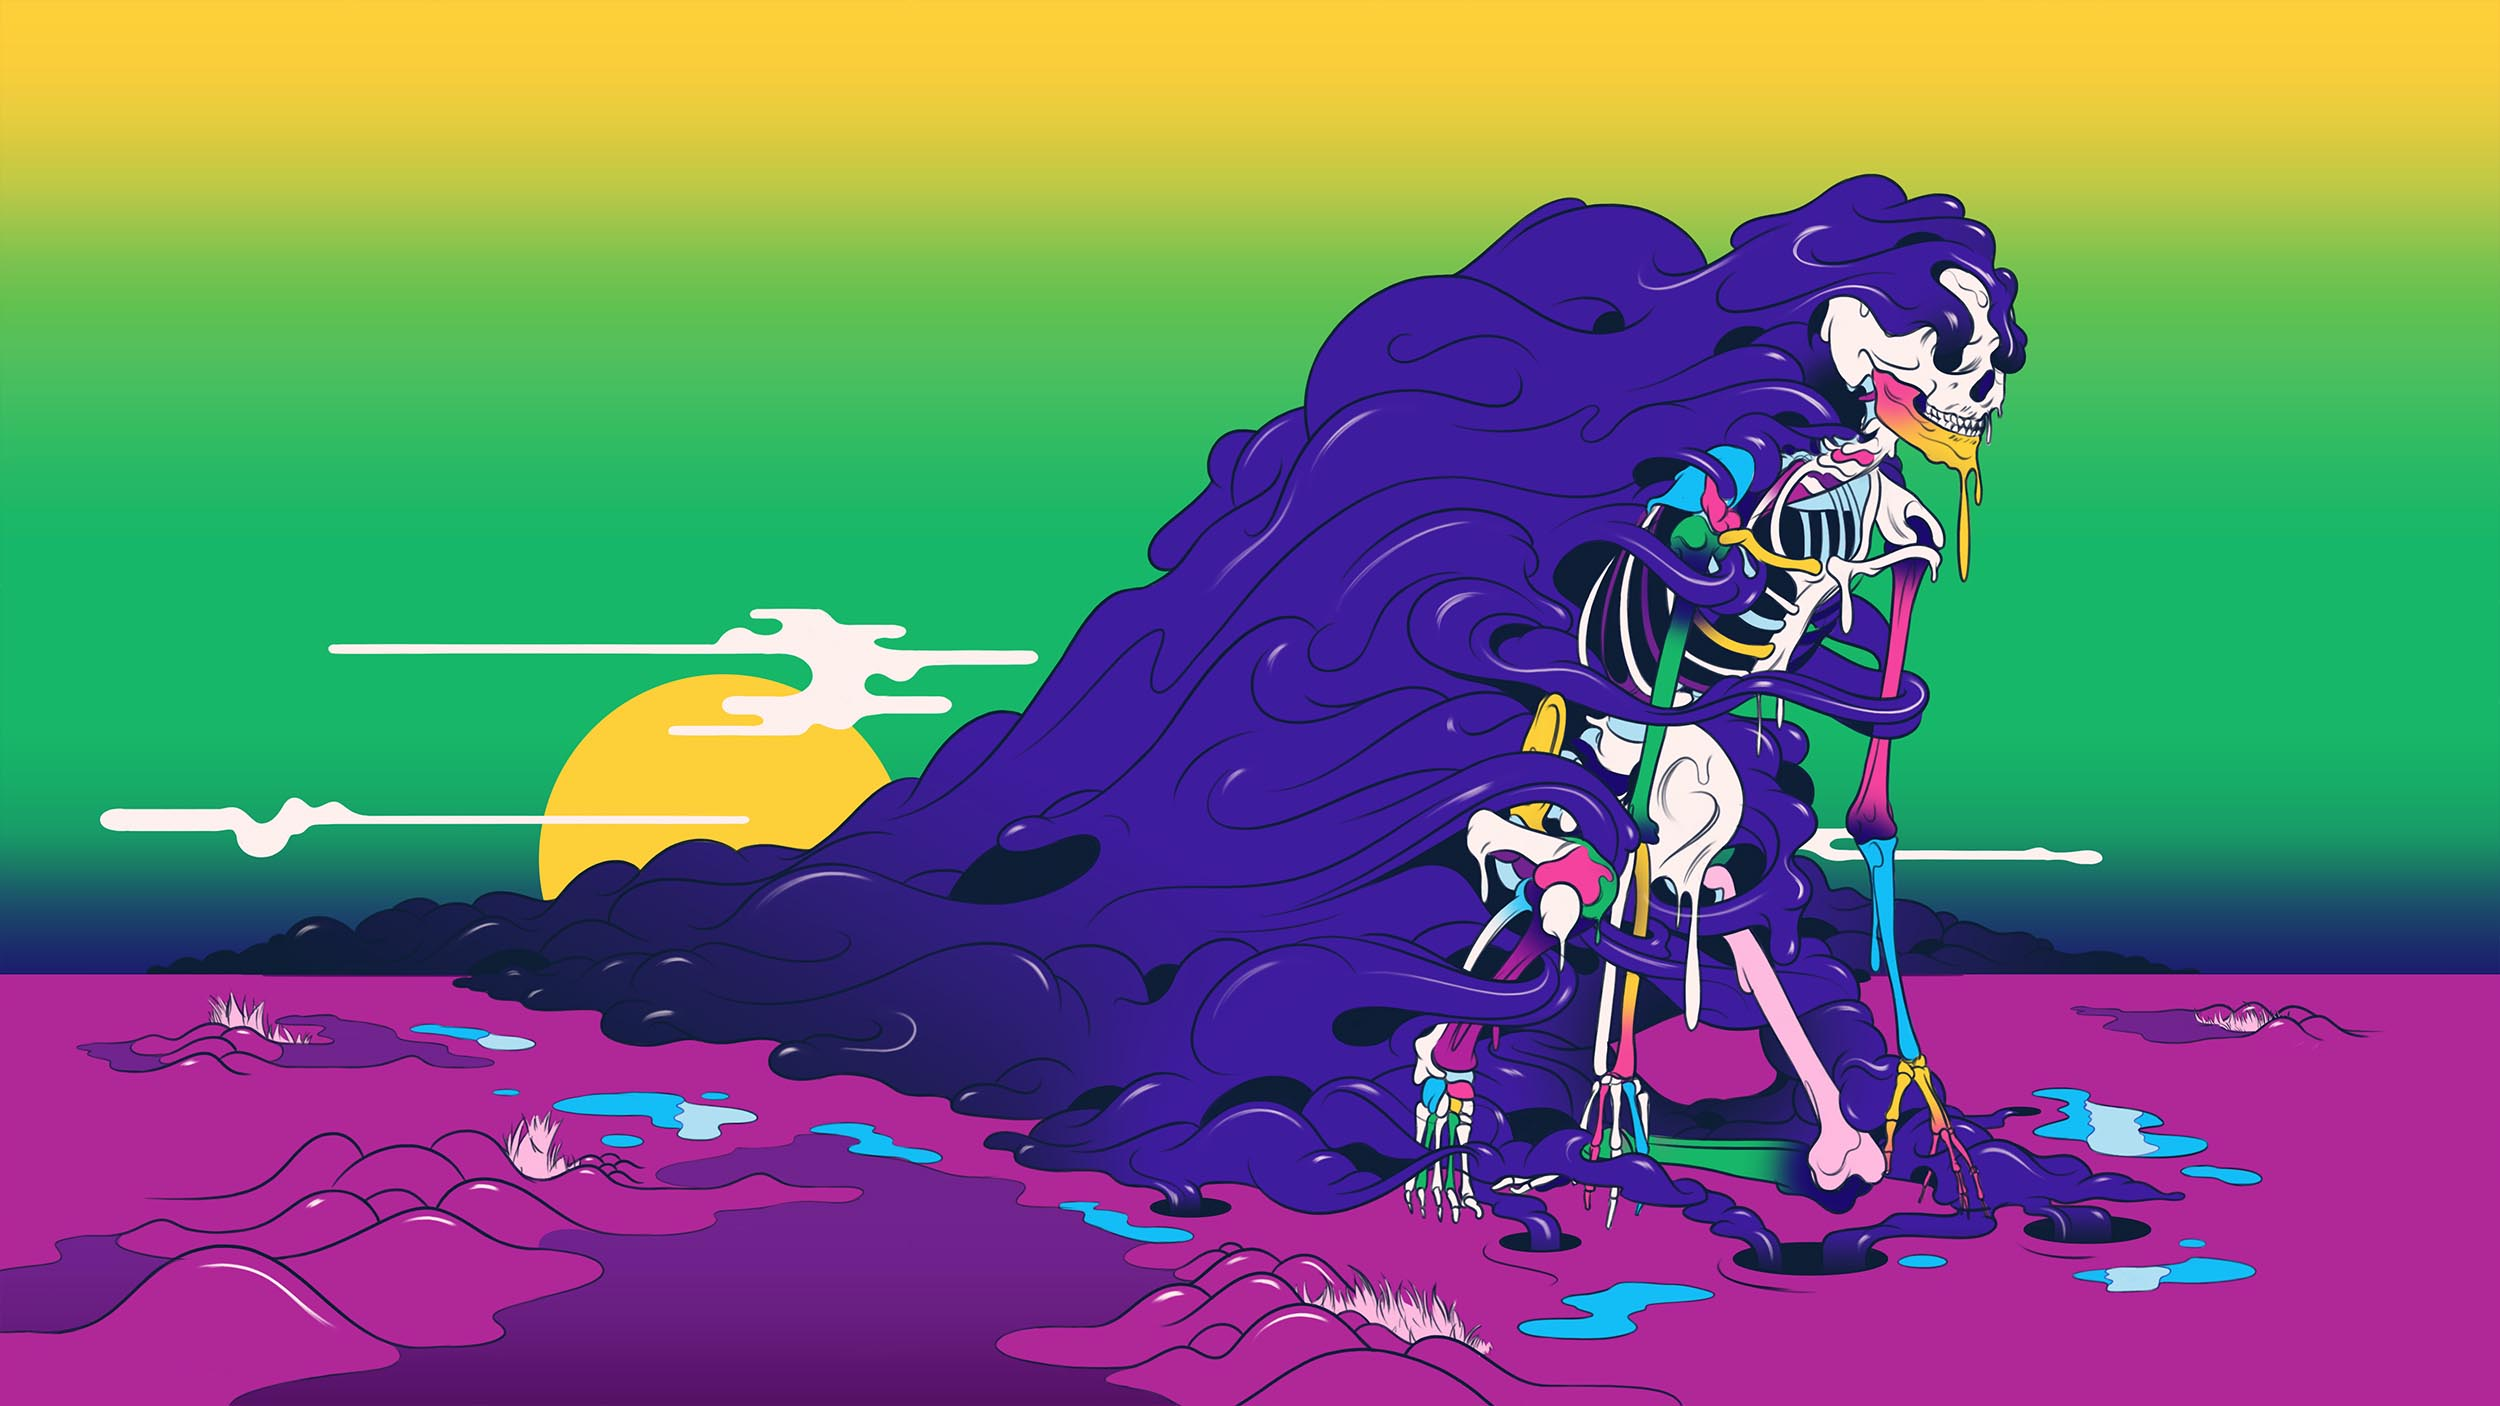 Zeds Dead — Animated Music Video